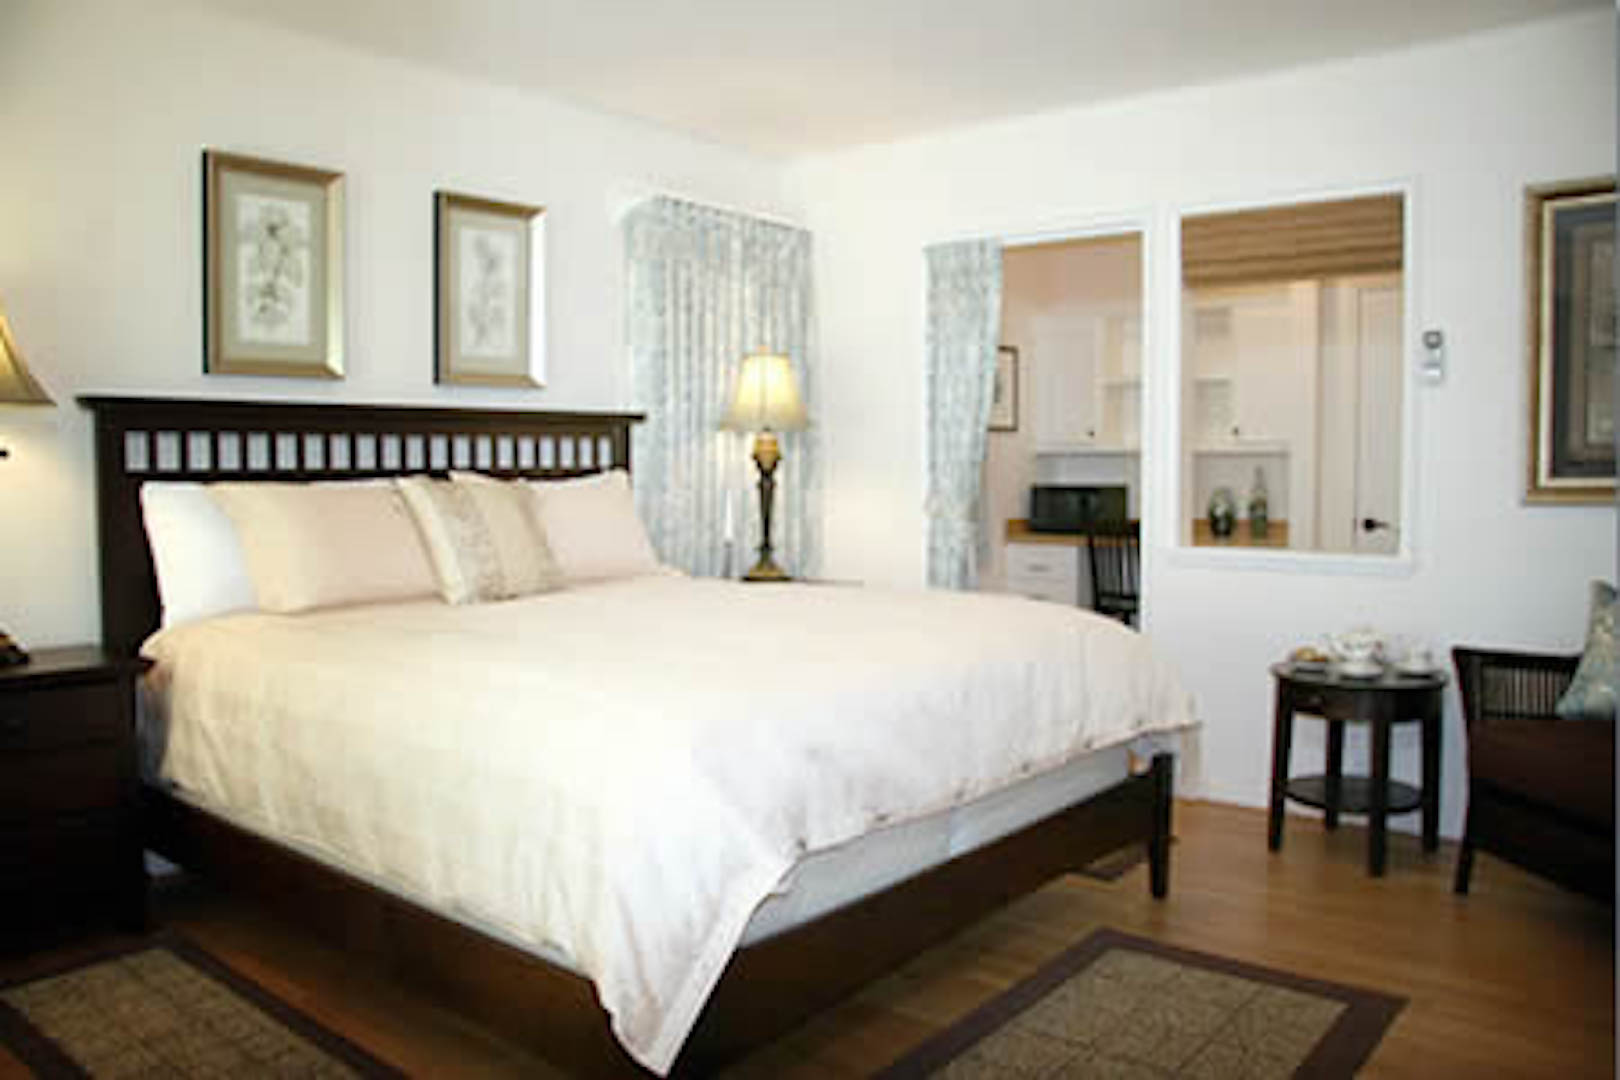 A bedroom with a large bed in a hotel room at The Ojai Retreat.